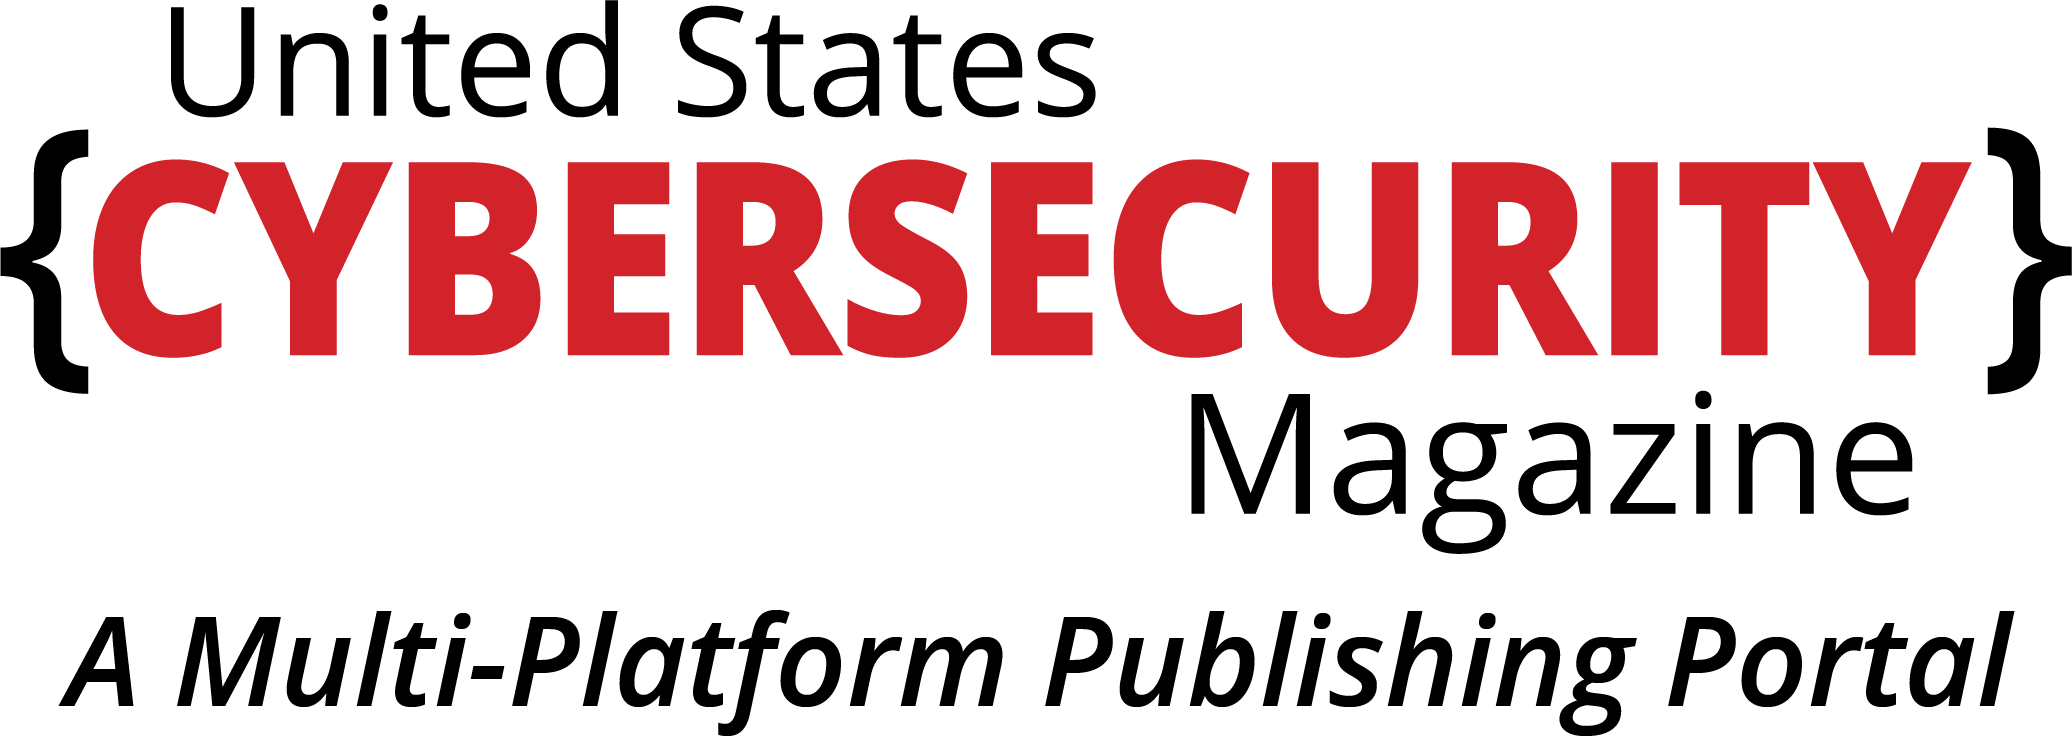 United States Cybersecurity Magazine